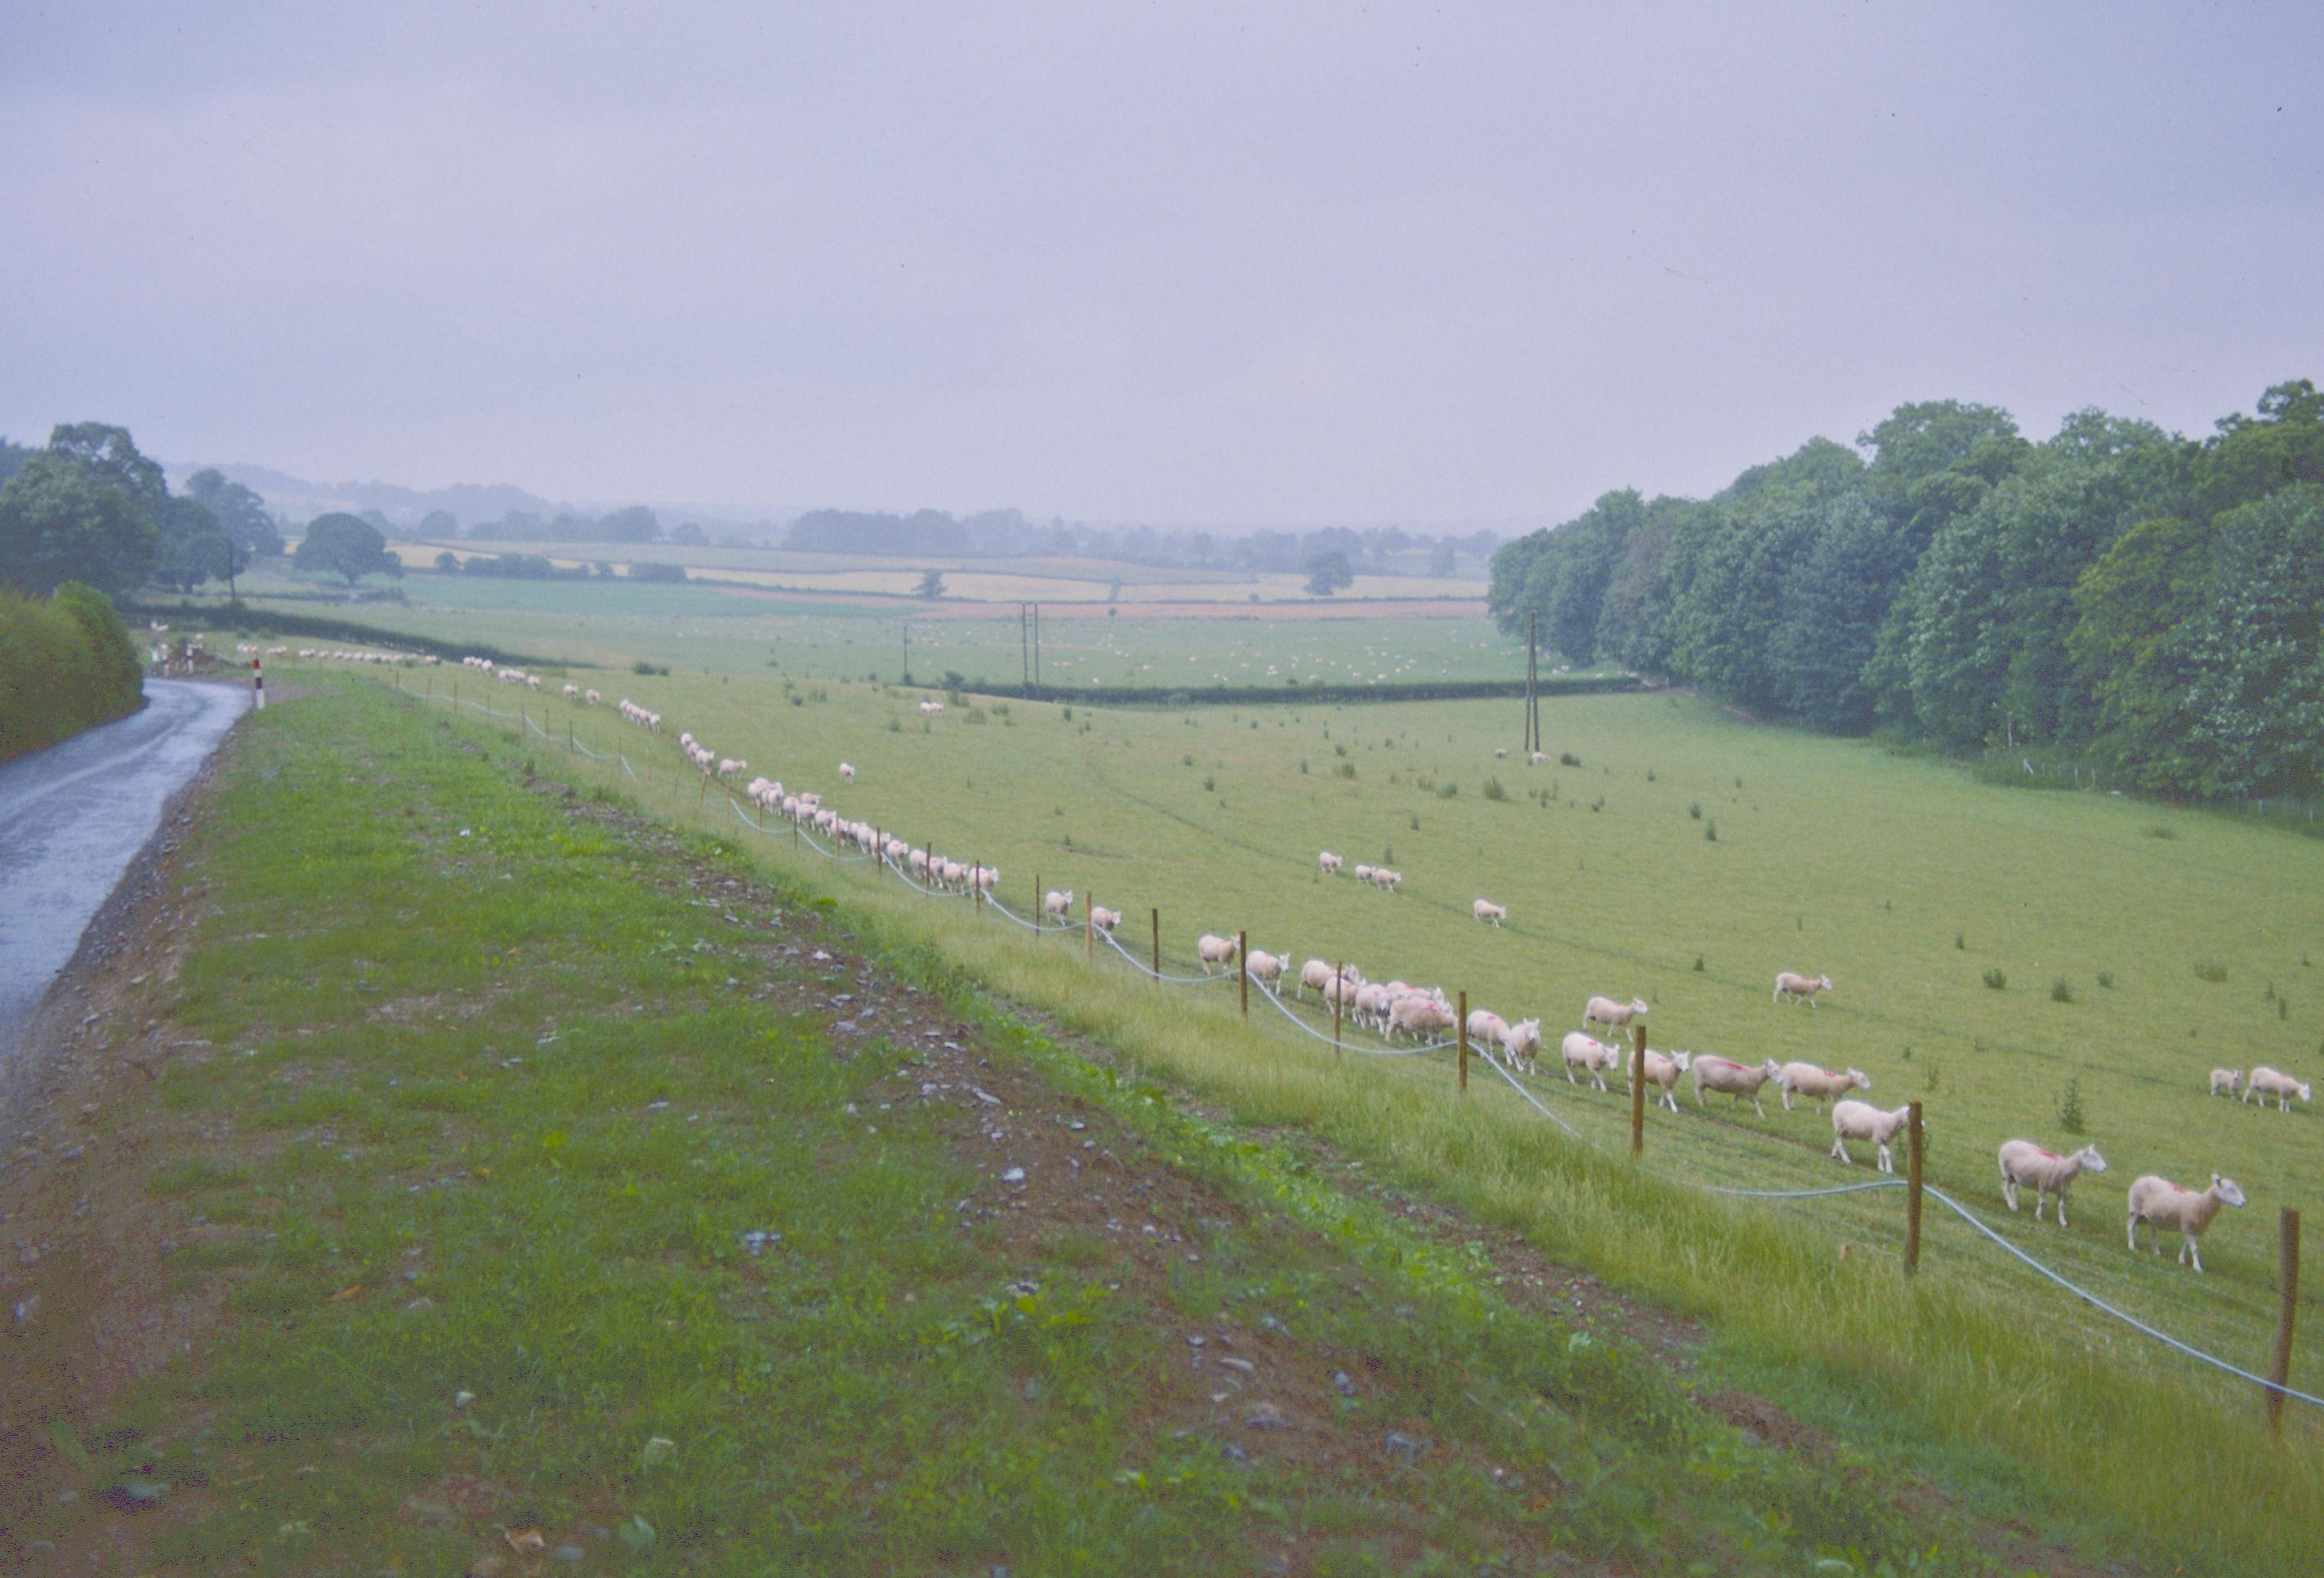 Sheep in transition near the Chirk Castle gates